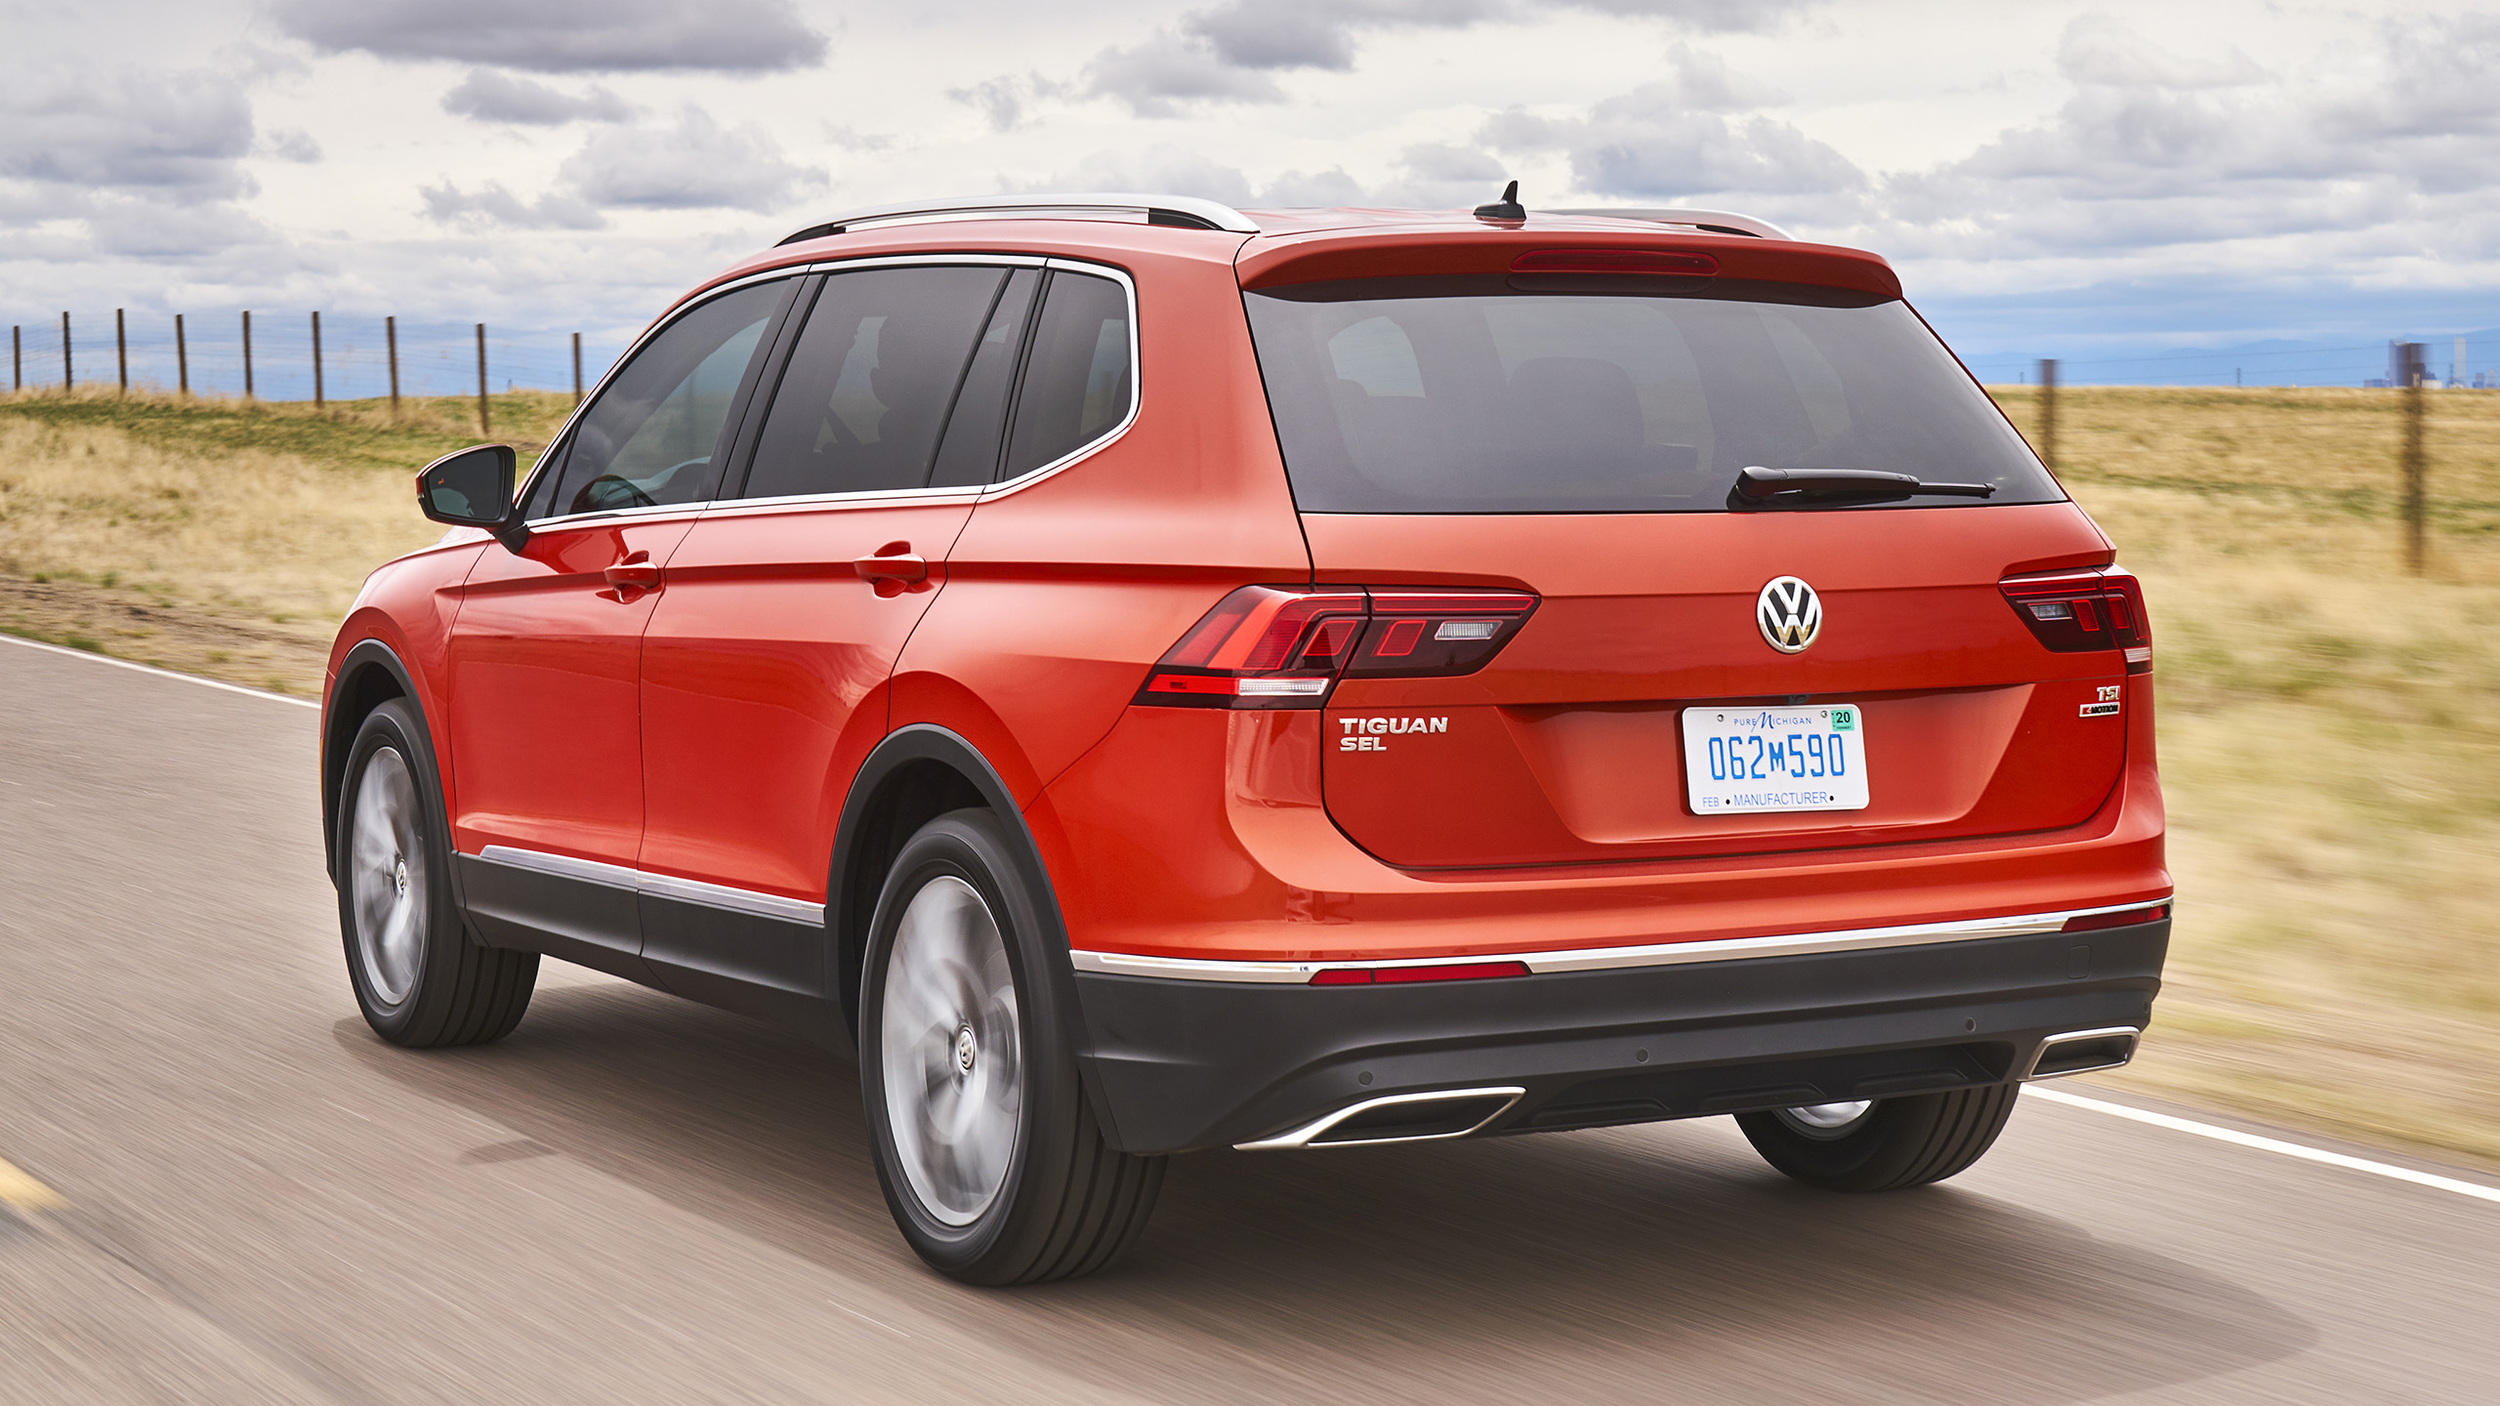 2018 Volkswagen Tiguan First Drive | Imperfect improvement